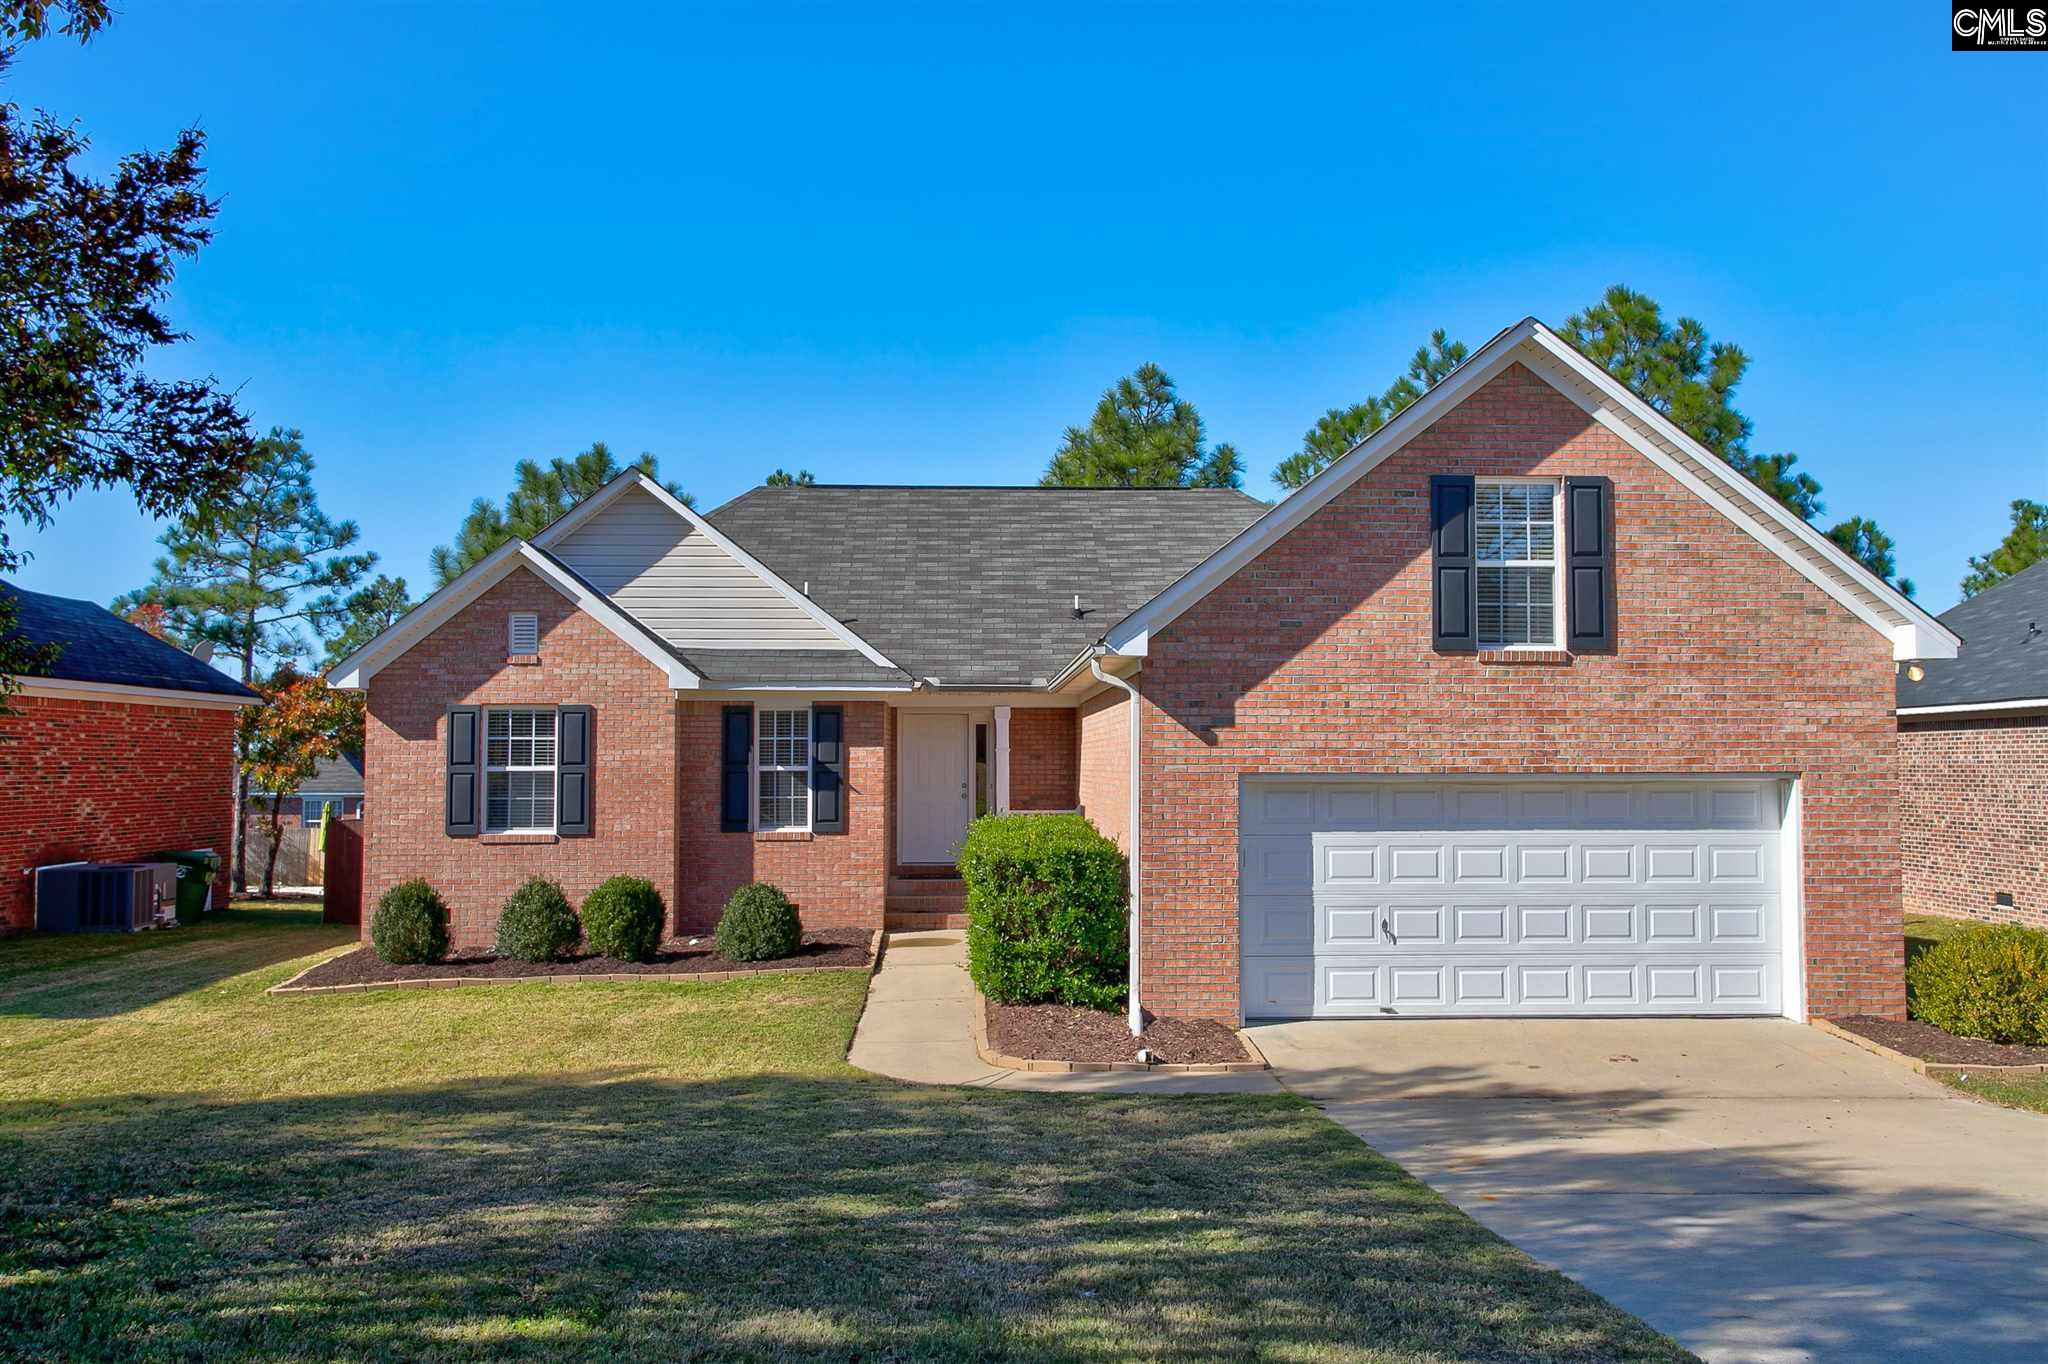 333 Summit Hills Columbia, SC 29229-7193